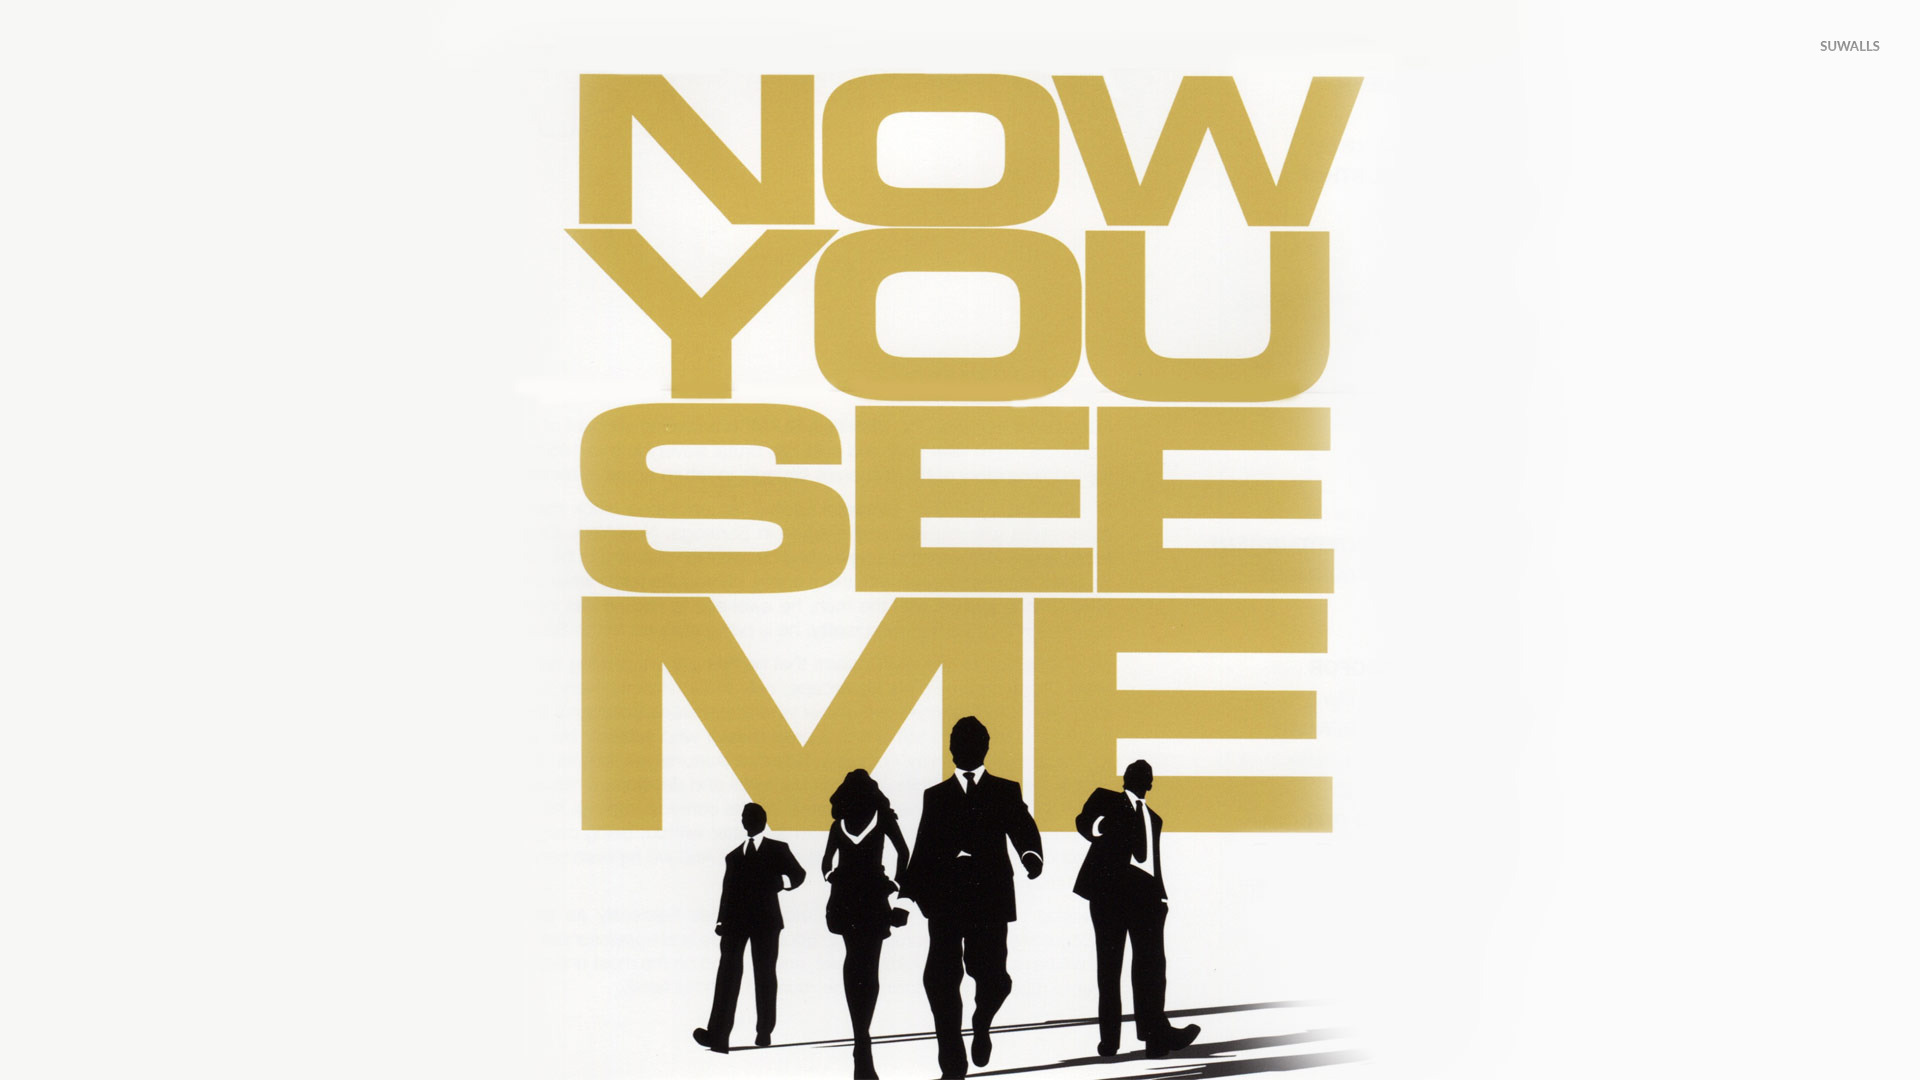 Now You See Me [2] wallpaper - Movie wallpapers - #19318